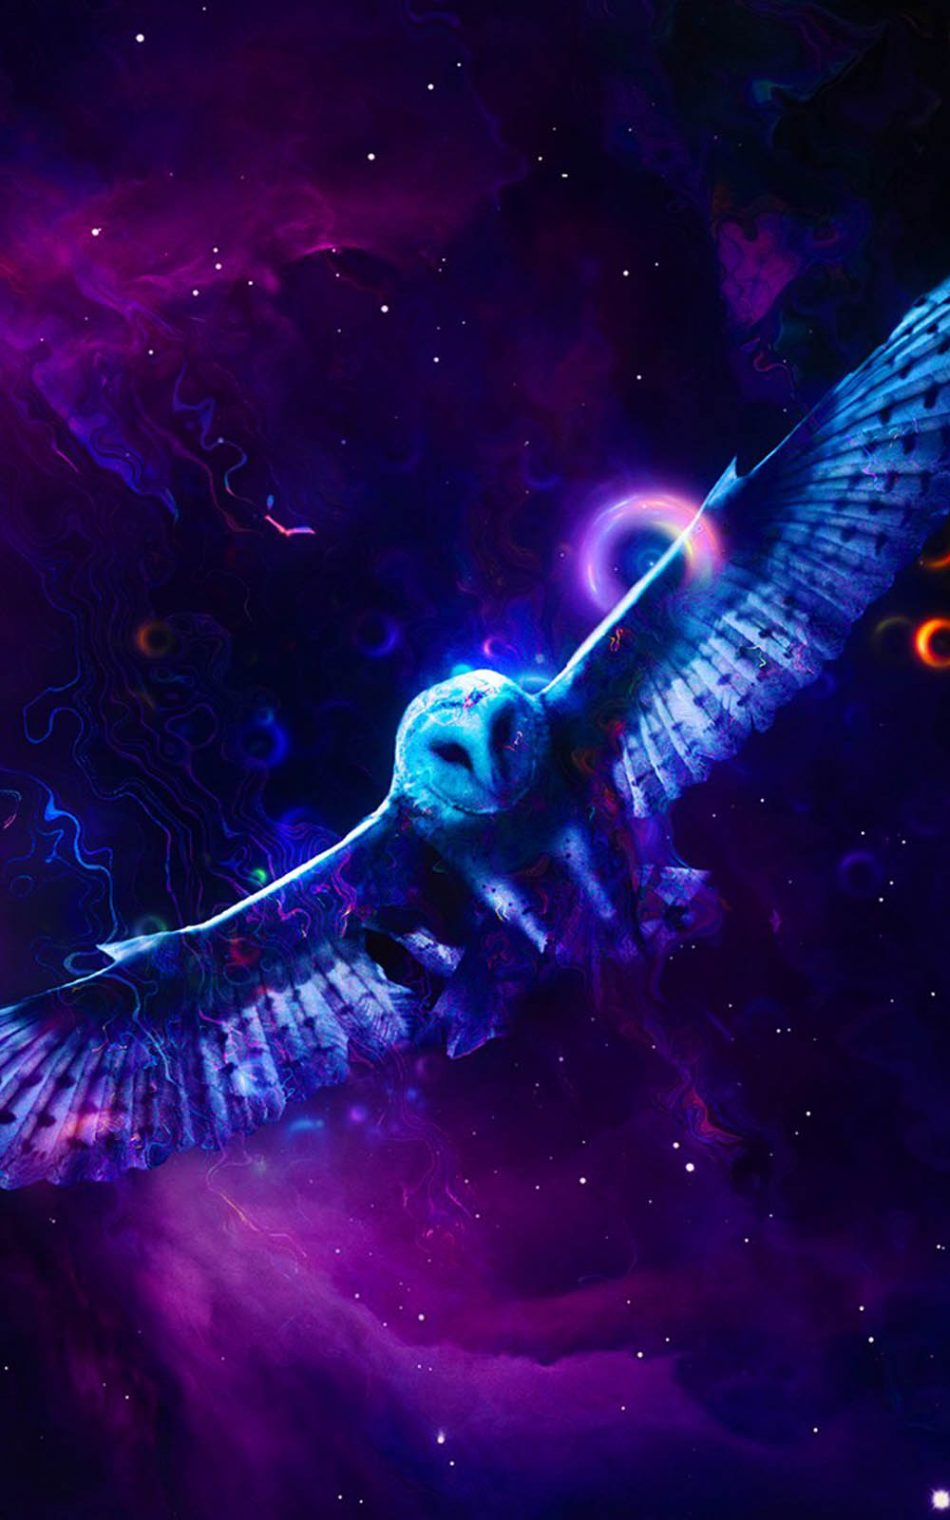 Download Neon Owl Free Pure 4k Ultra Hd Mobile Wallpaper